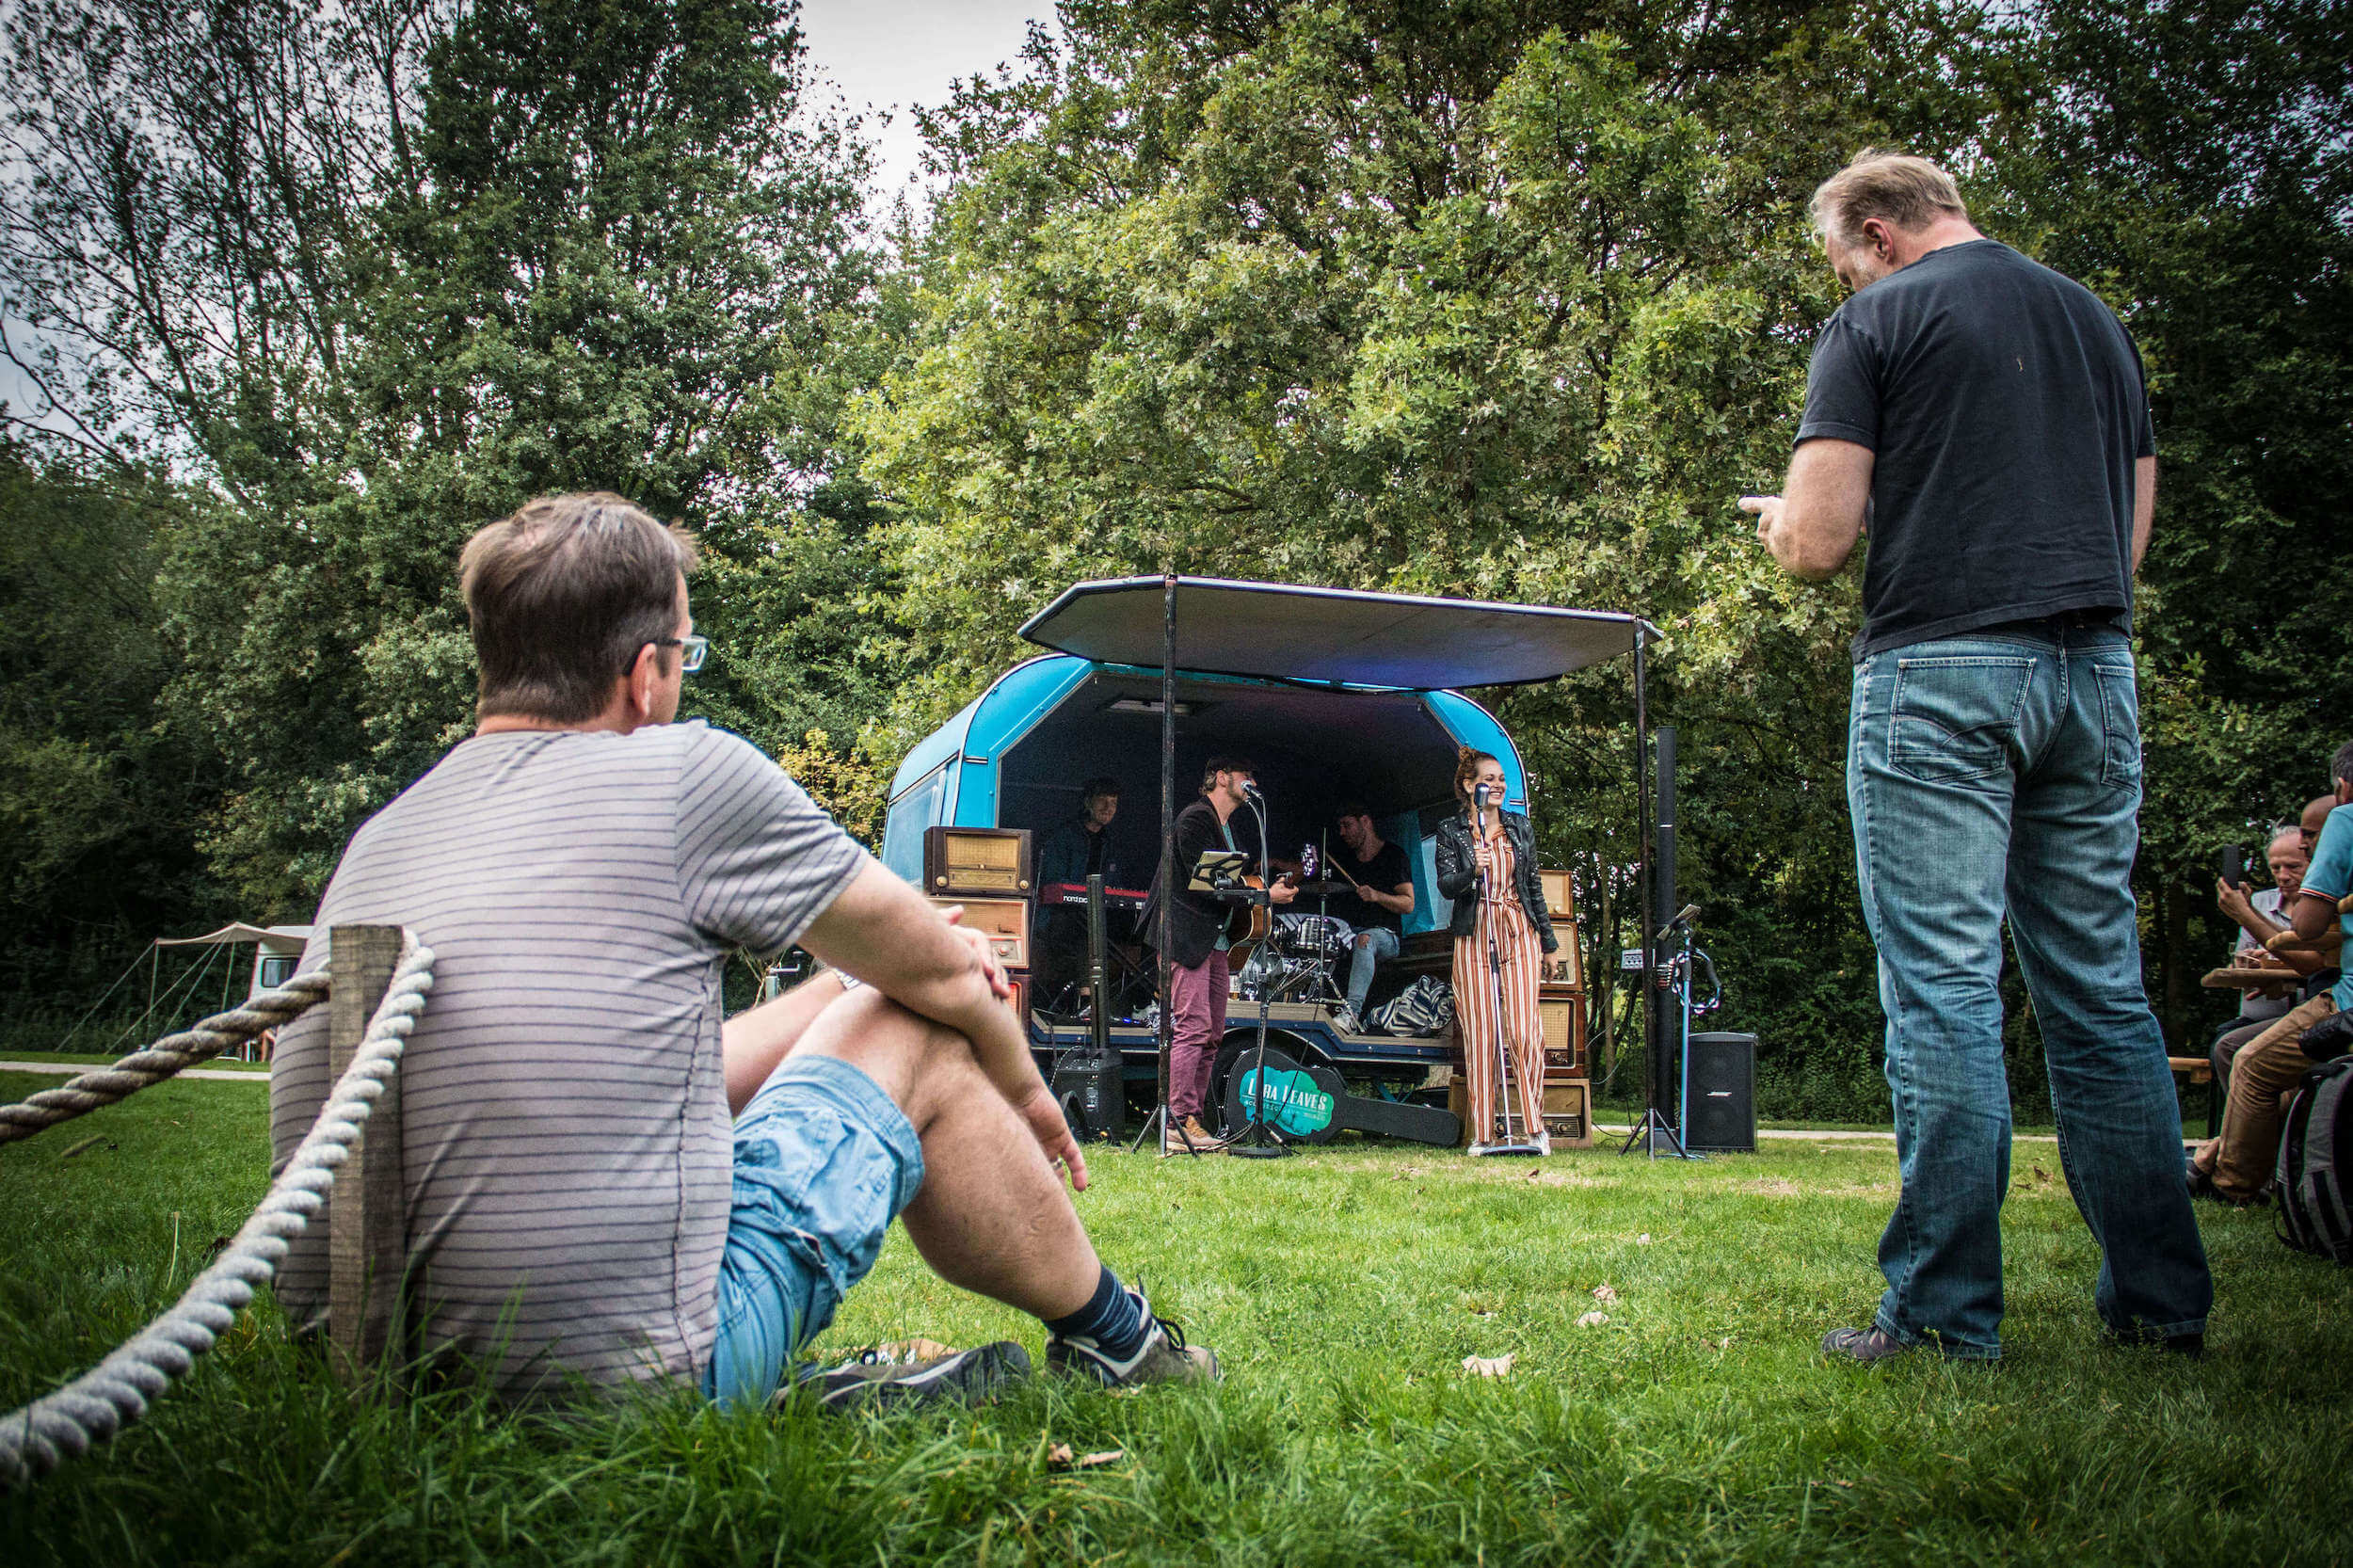 After Summer Festival Muziek